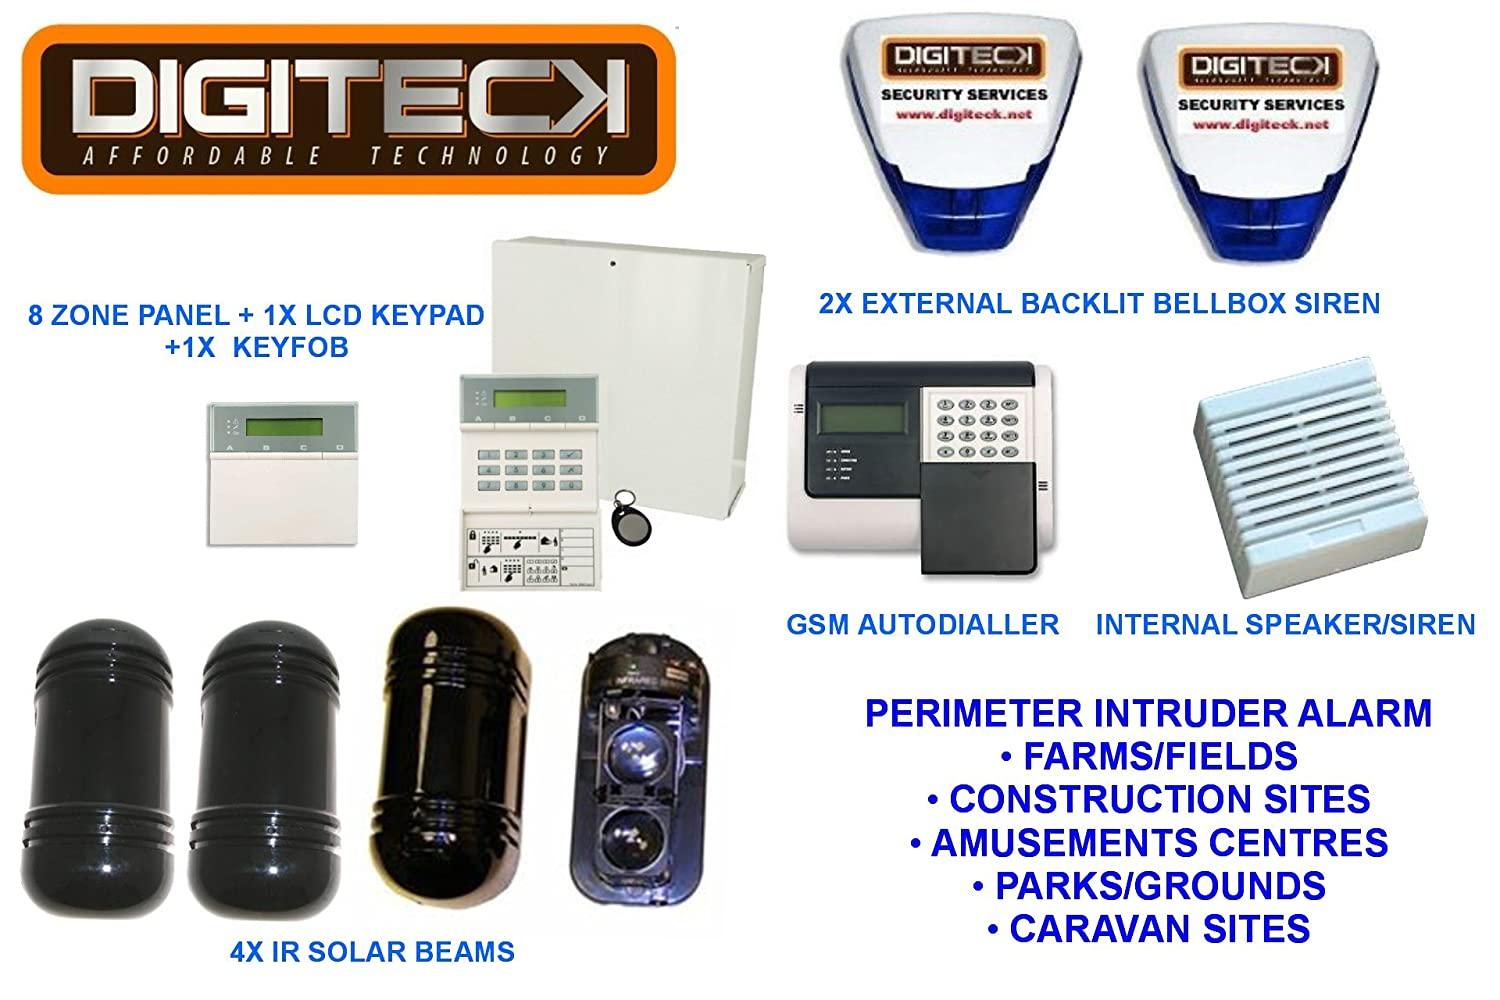 Perimeter Intruder Alarm Ir Solar Beams 100m Range With Gsm Infrared Autodialler Calls You When Triggered And 2 Live Backlit Bellboxes Diy Tools